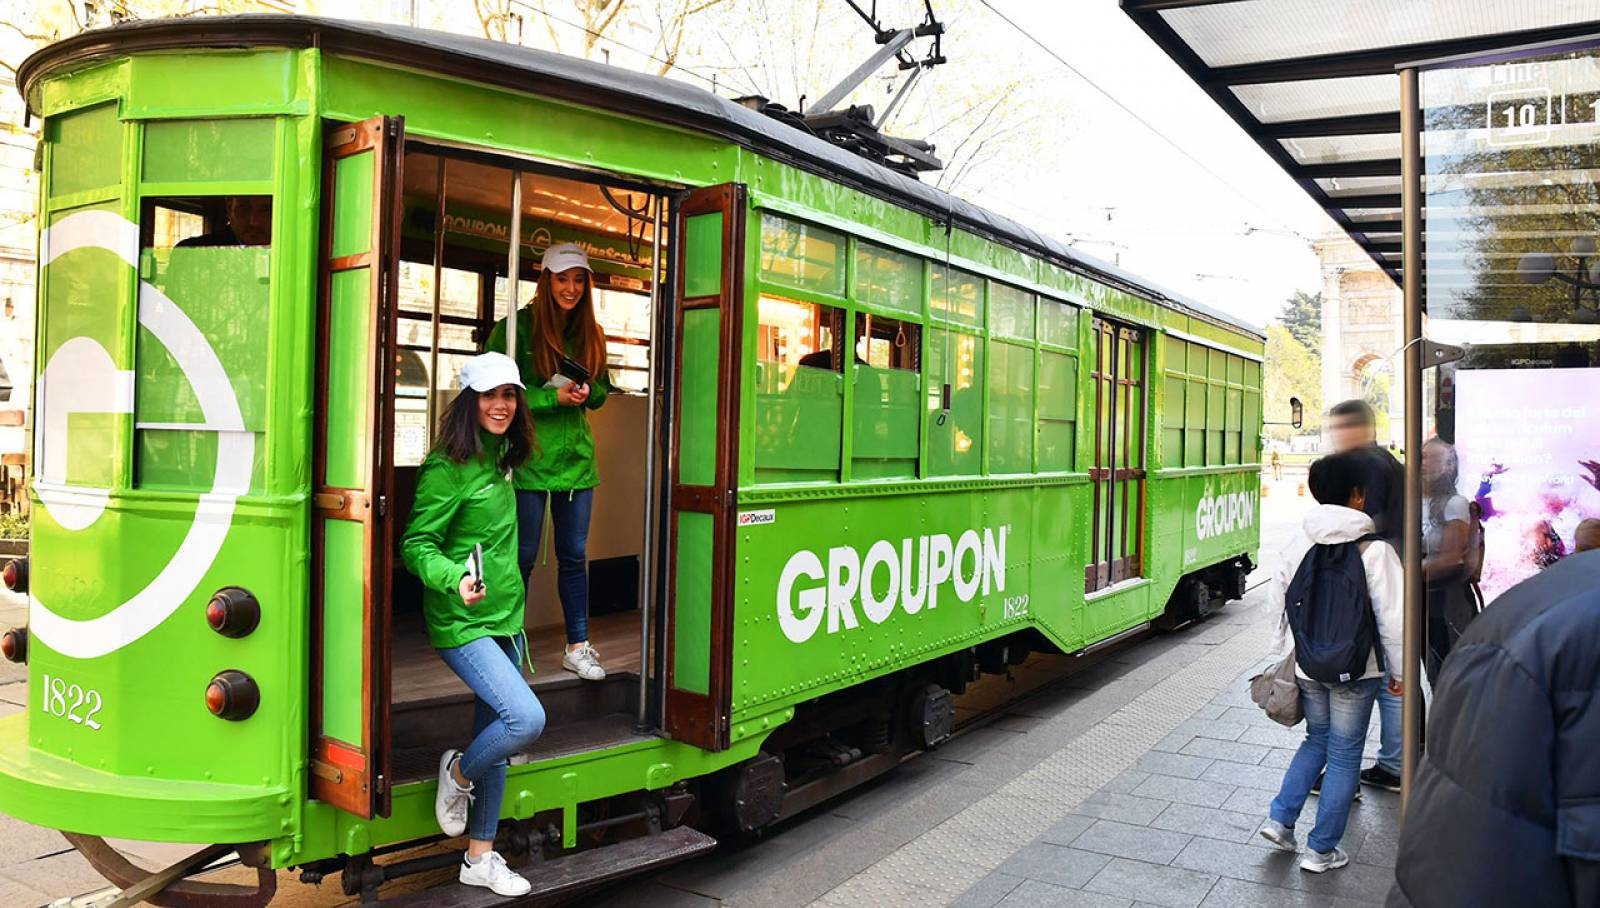 Pubblicità Out of Home a Milano IGPDecaux tram speciale per Groupon